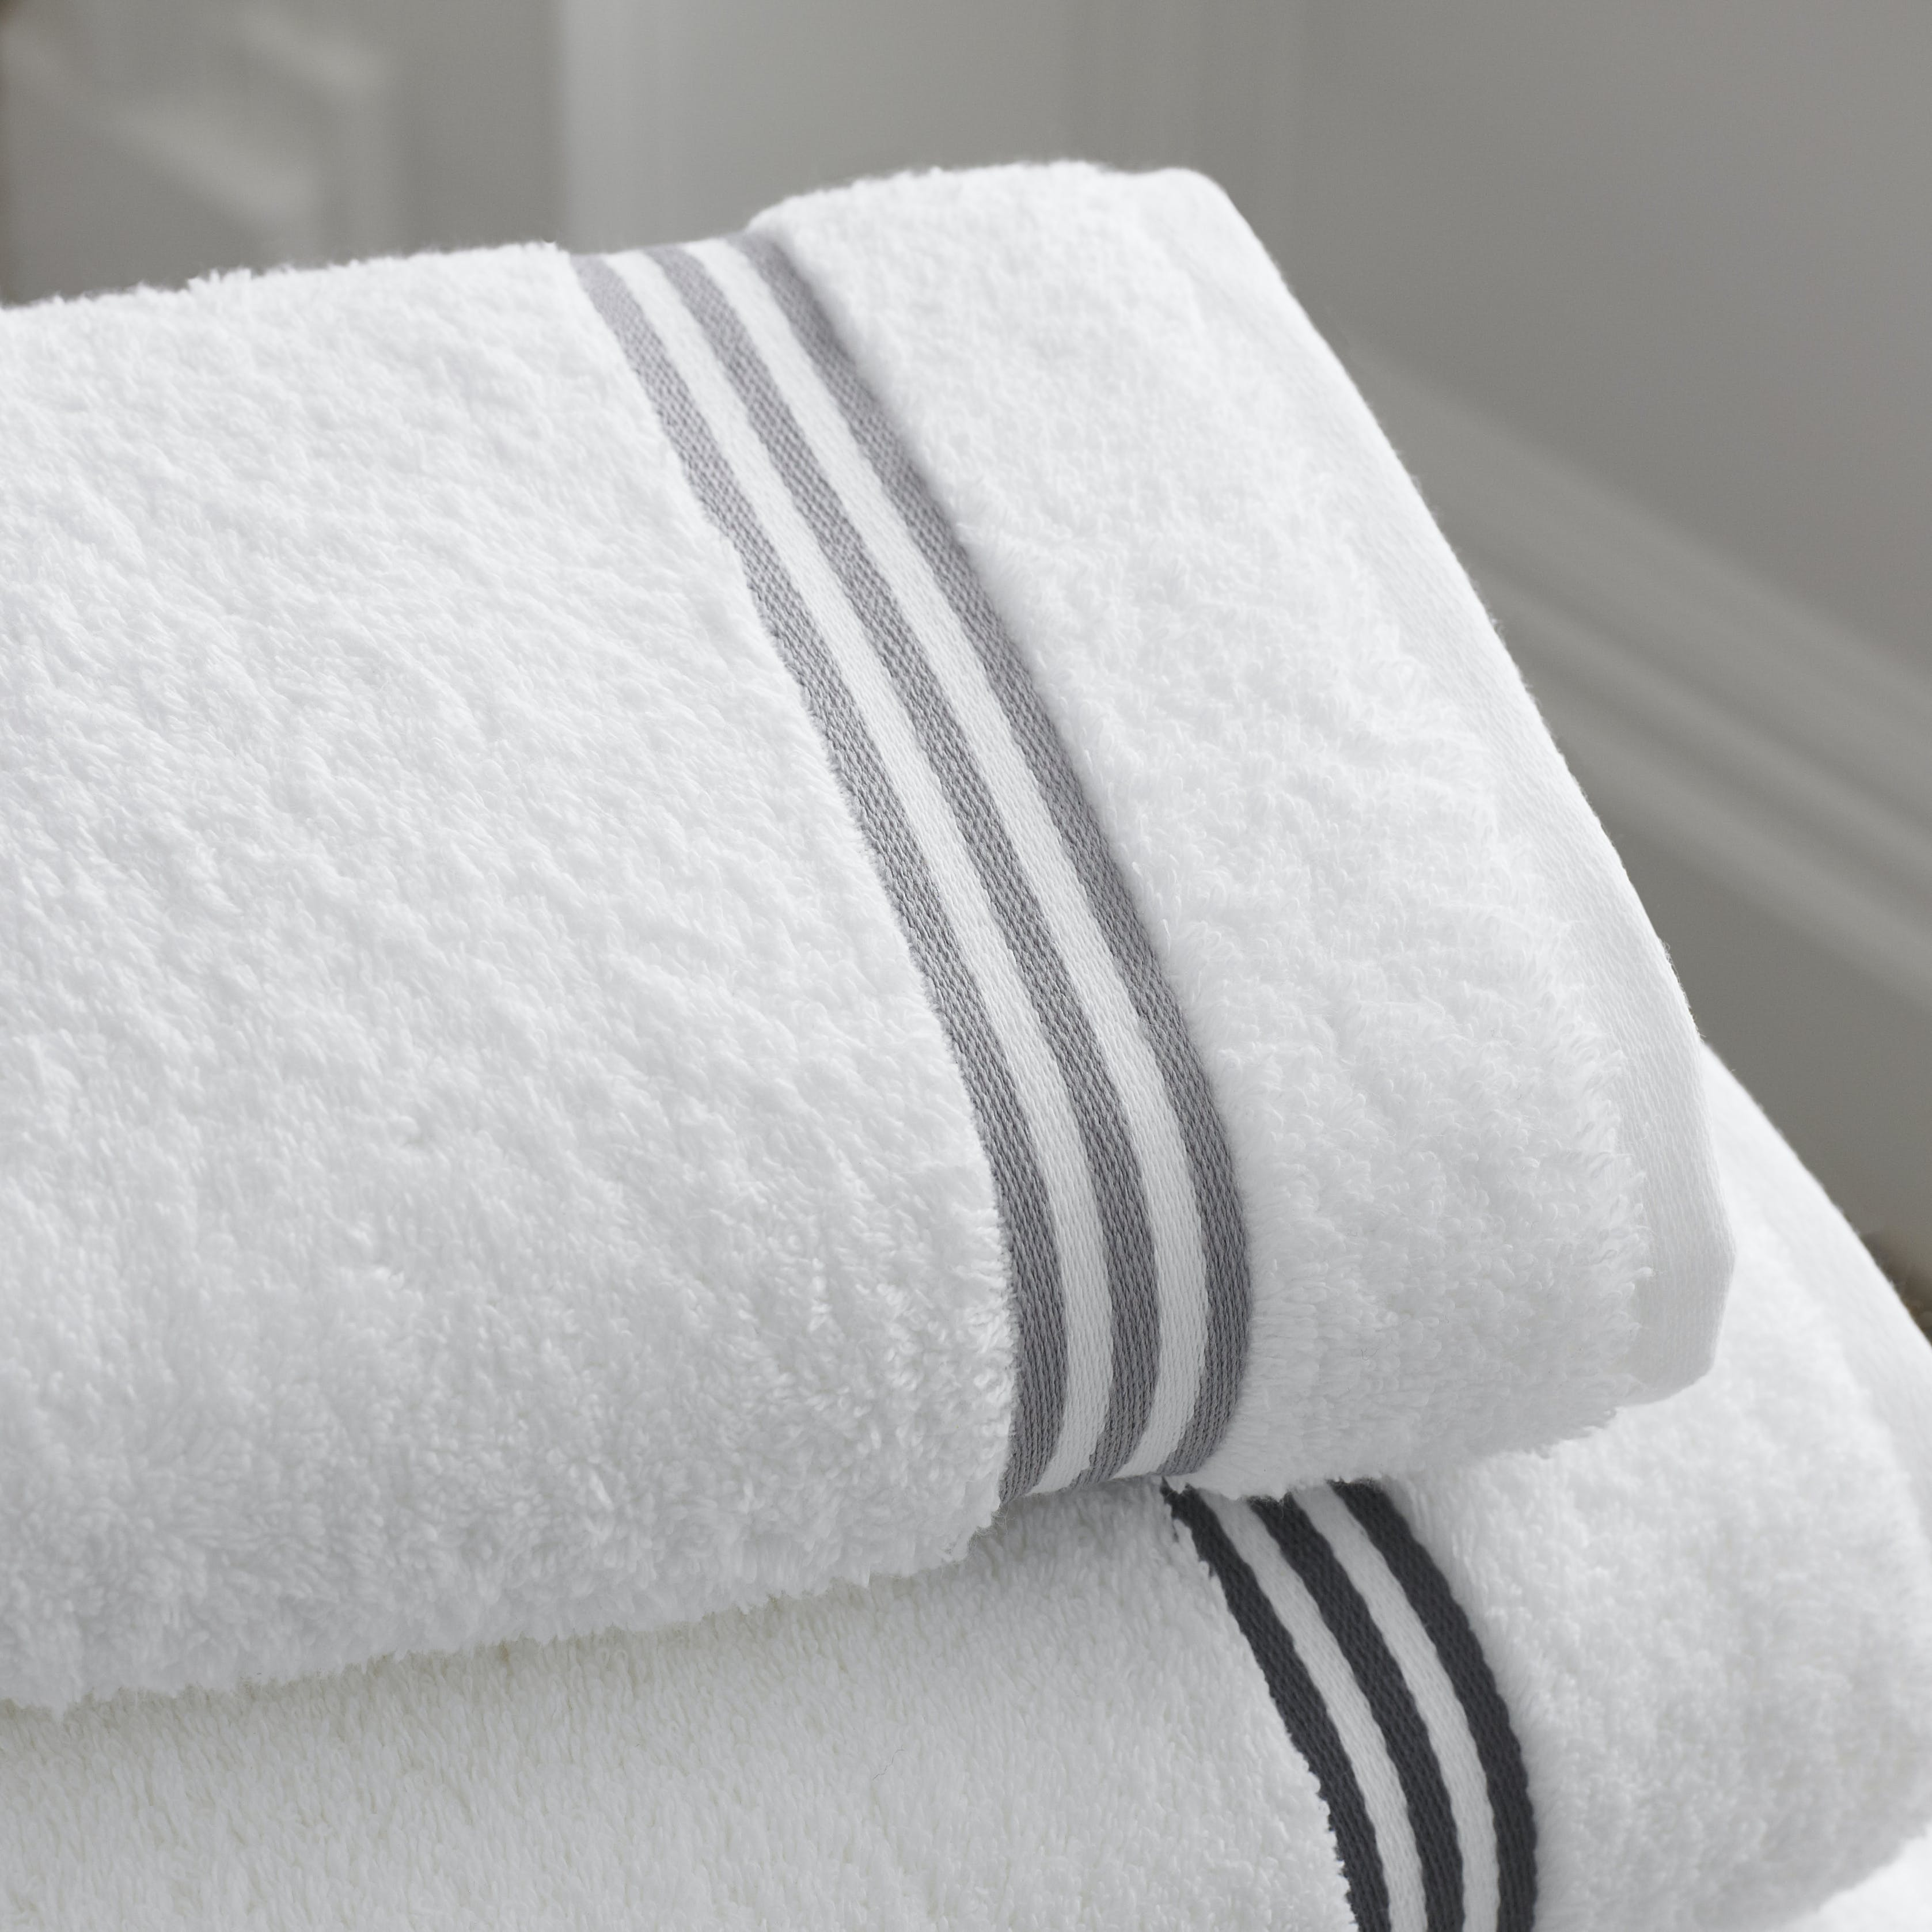 bath, bathroom, towels